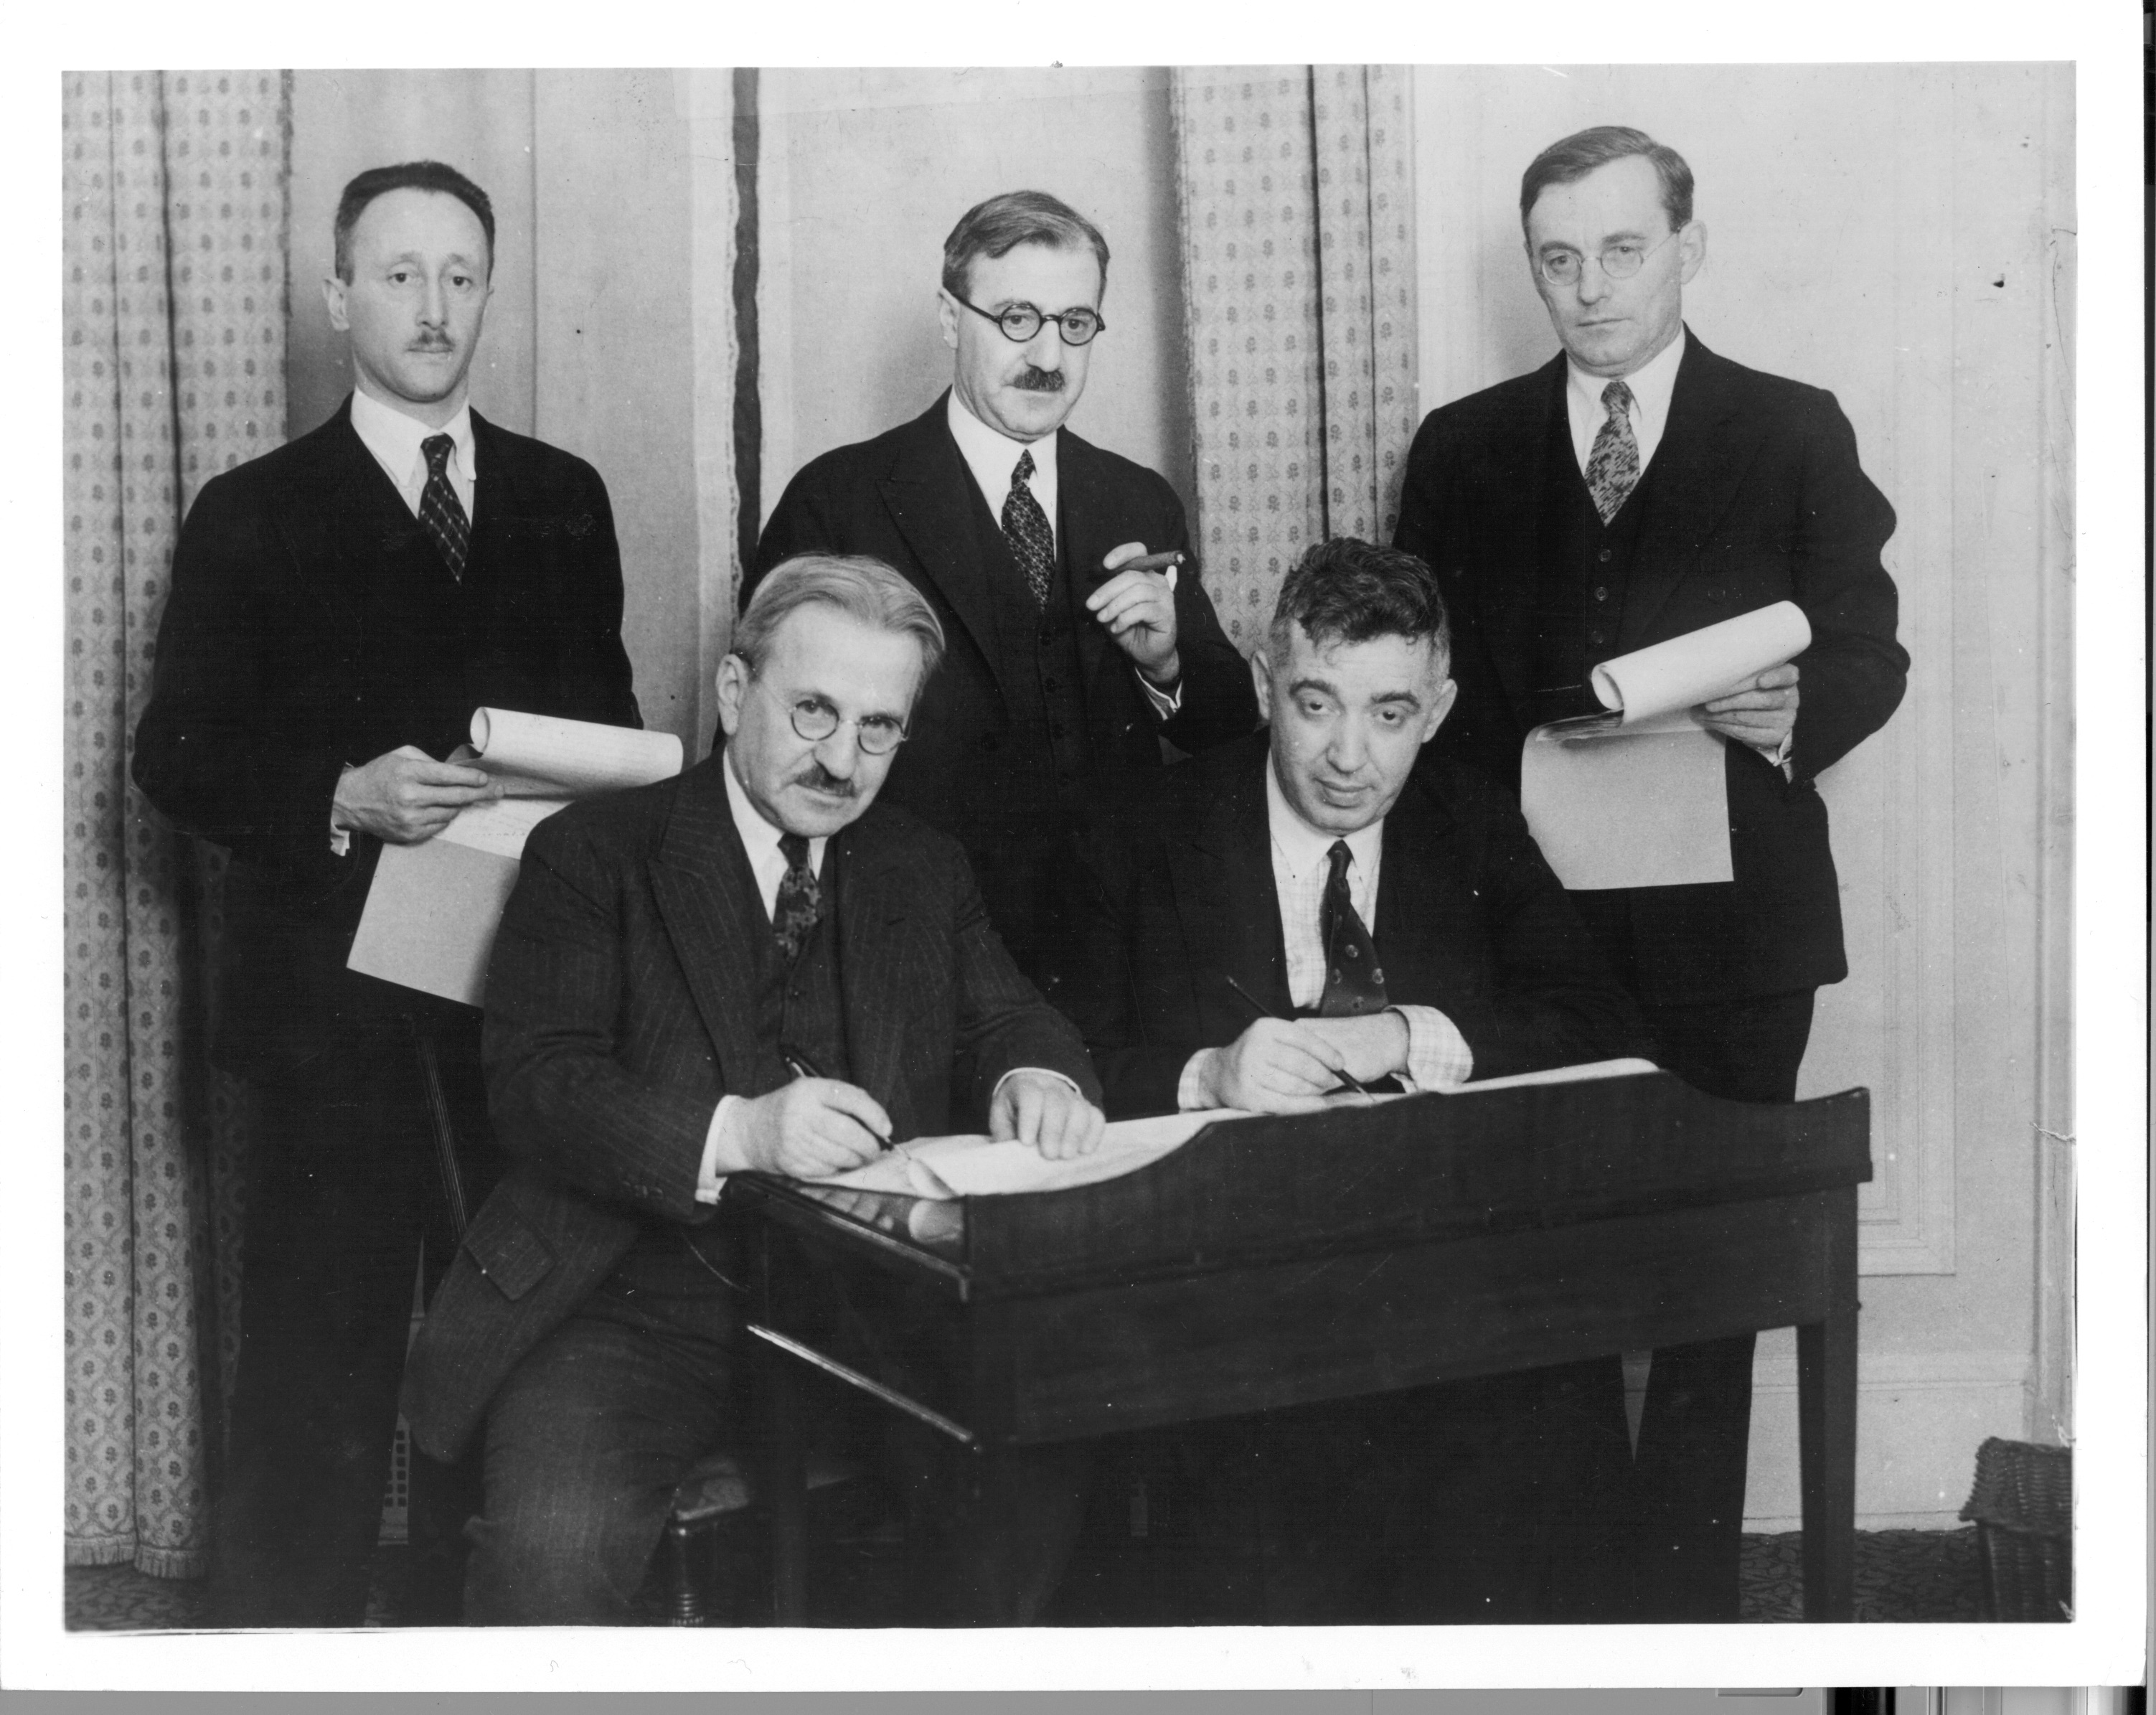 An old black and white photograph of five men, two sitting, with one signing a document.